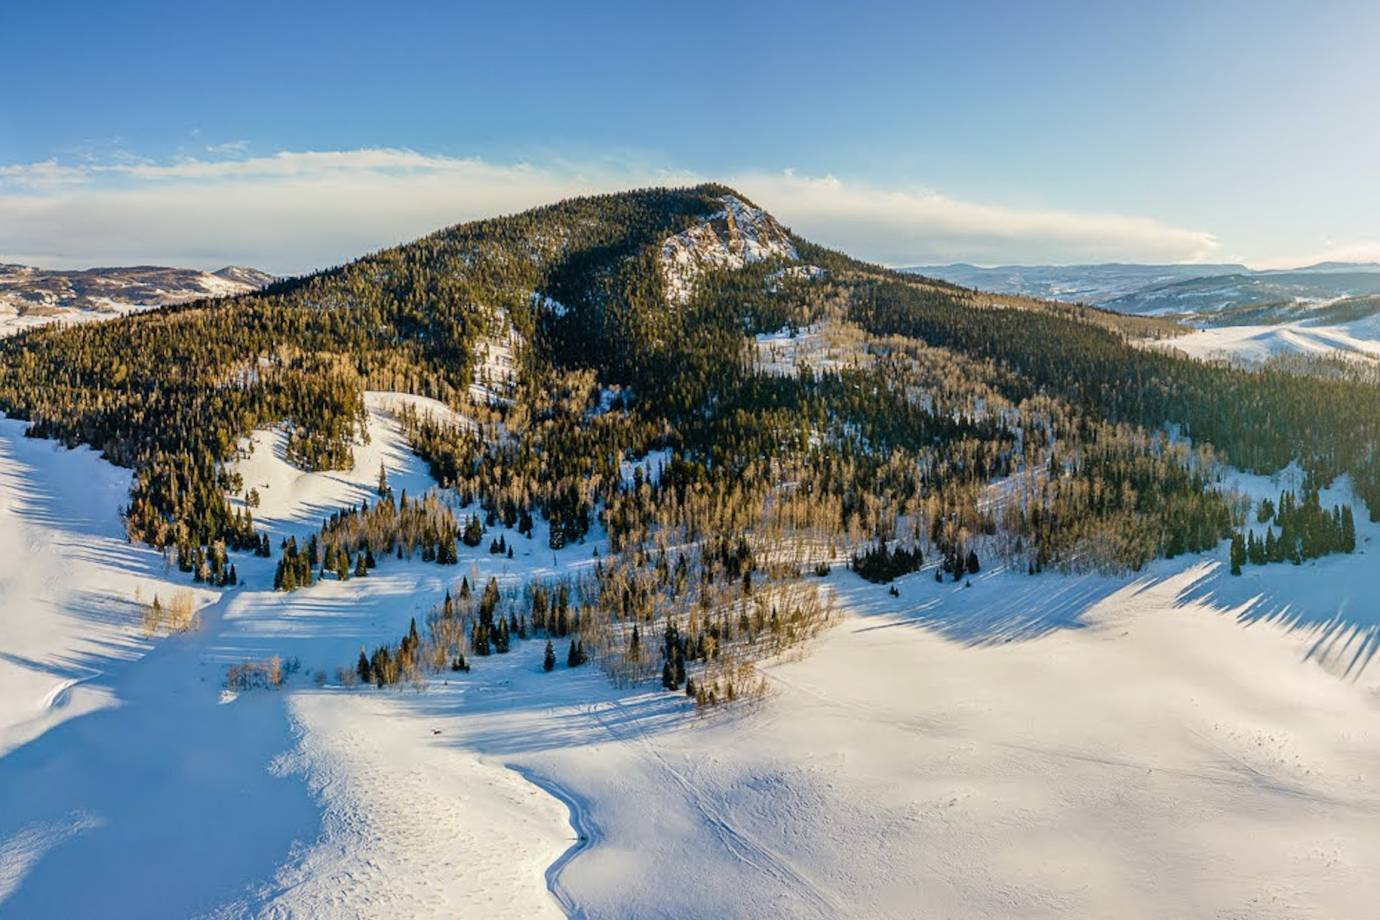 A view of pine tree and snow covered Bear mountain looking north